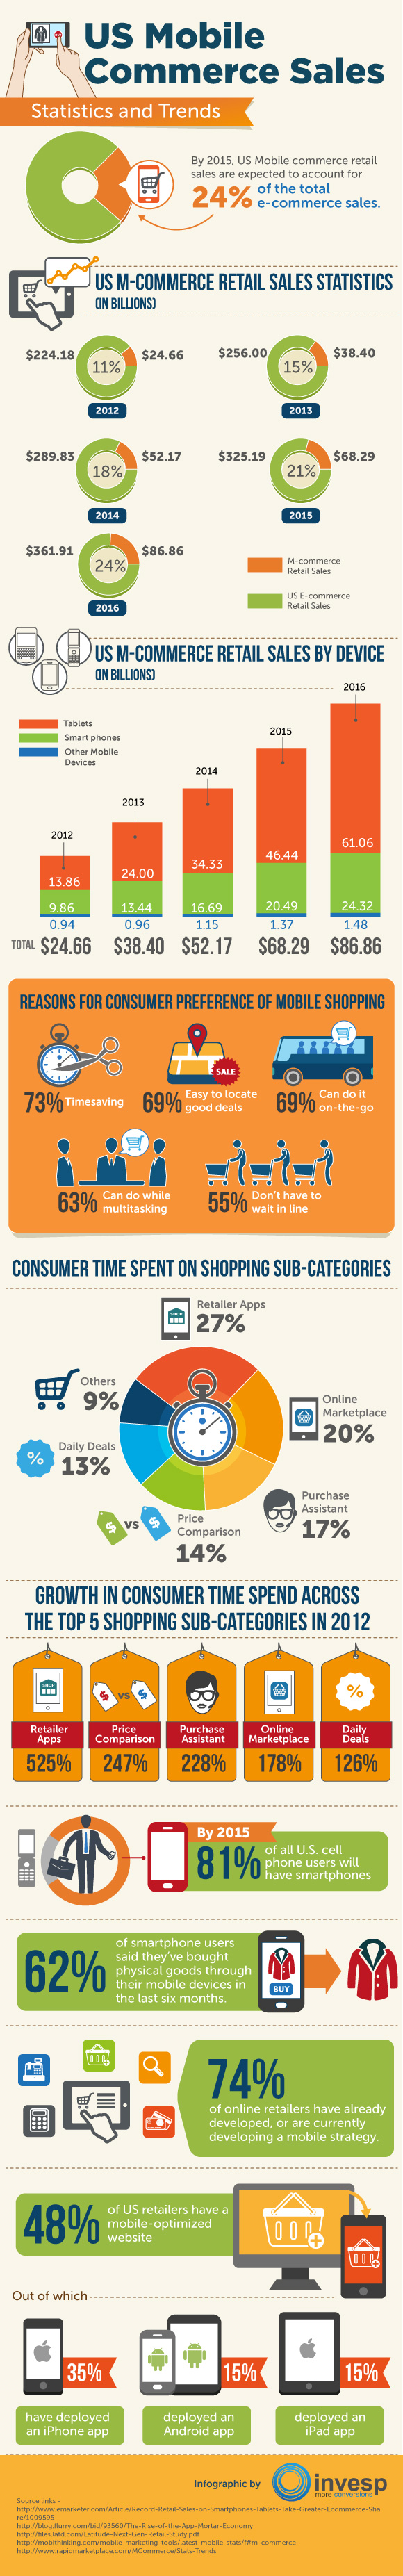 US Mobile Commerce Retail Trends